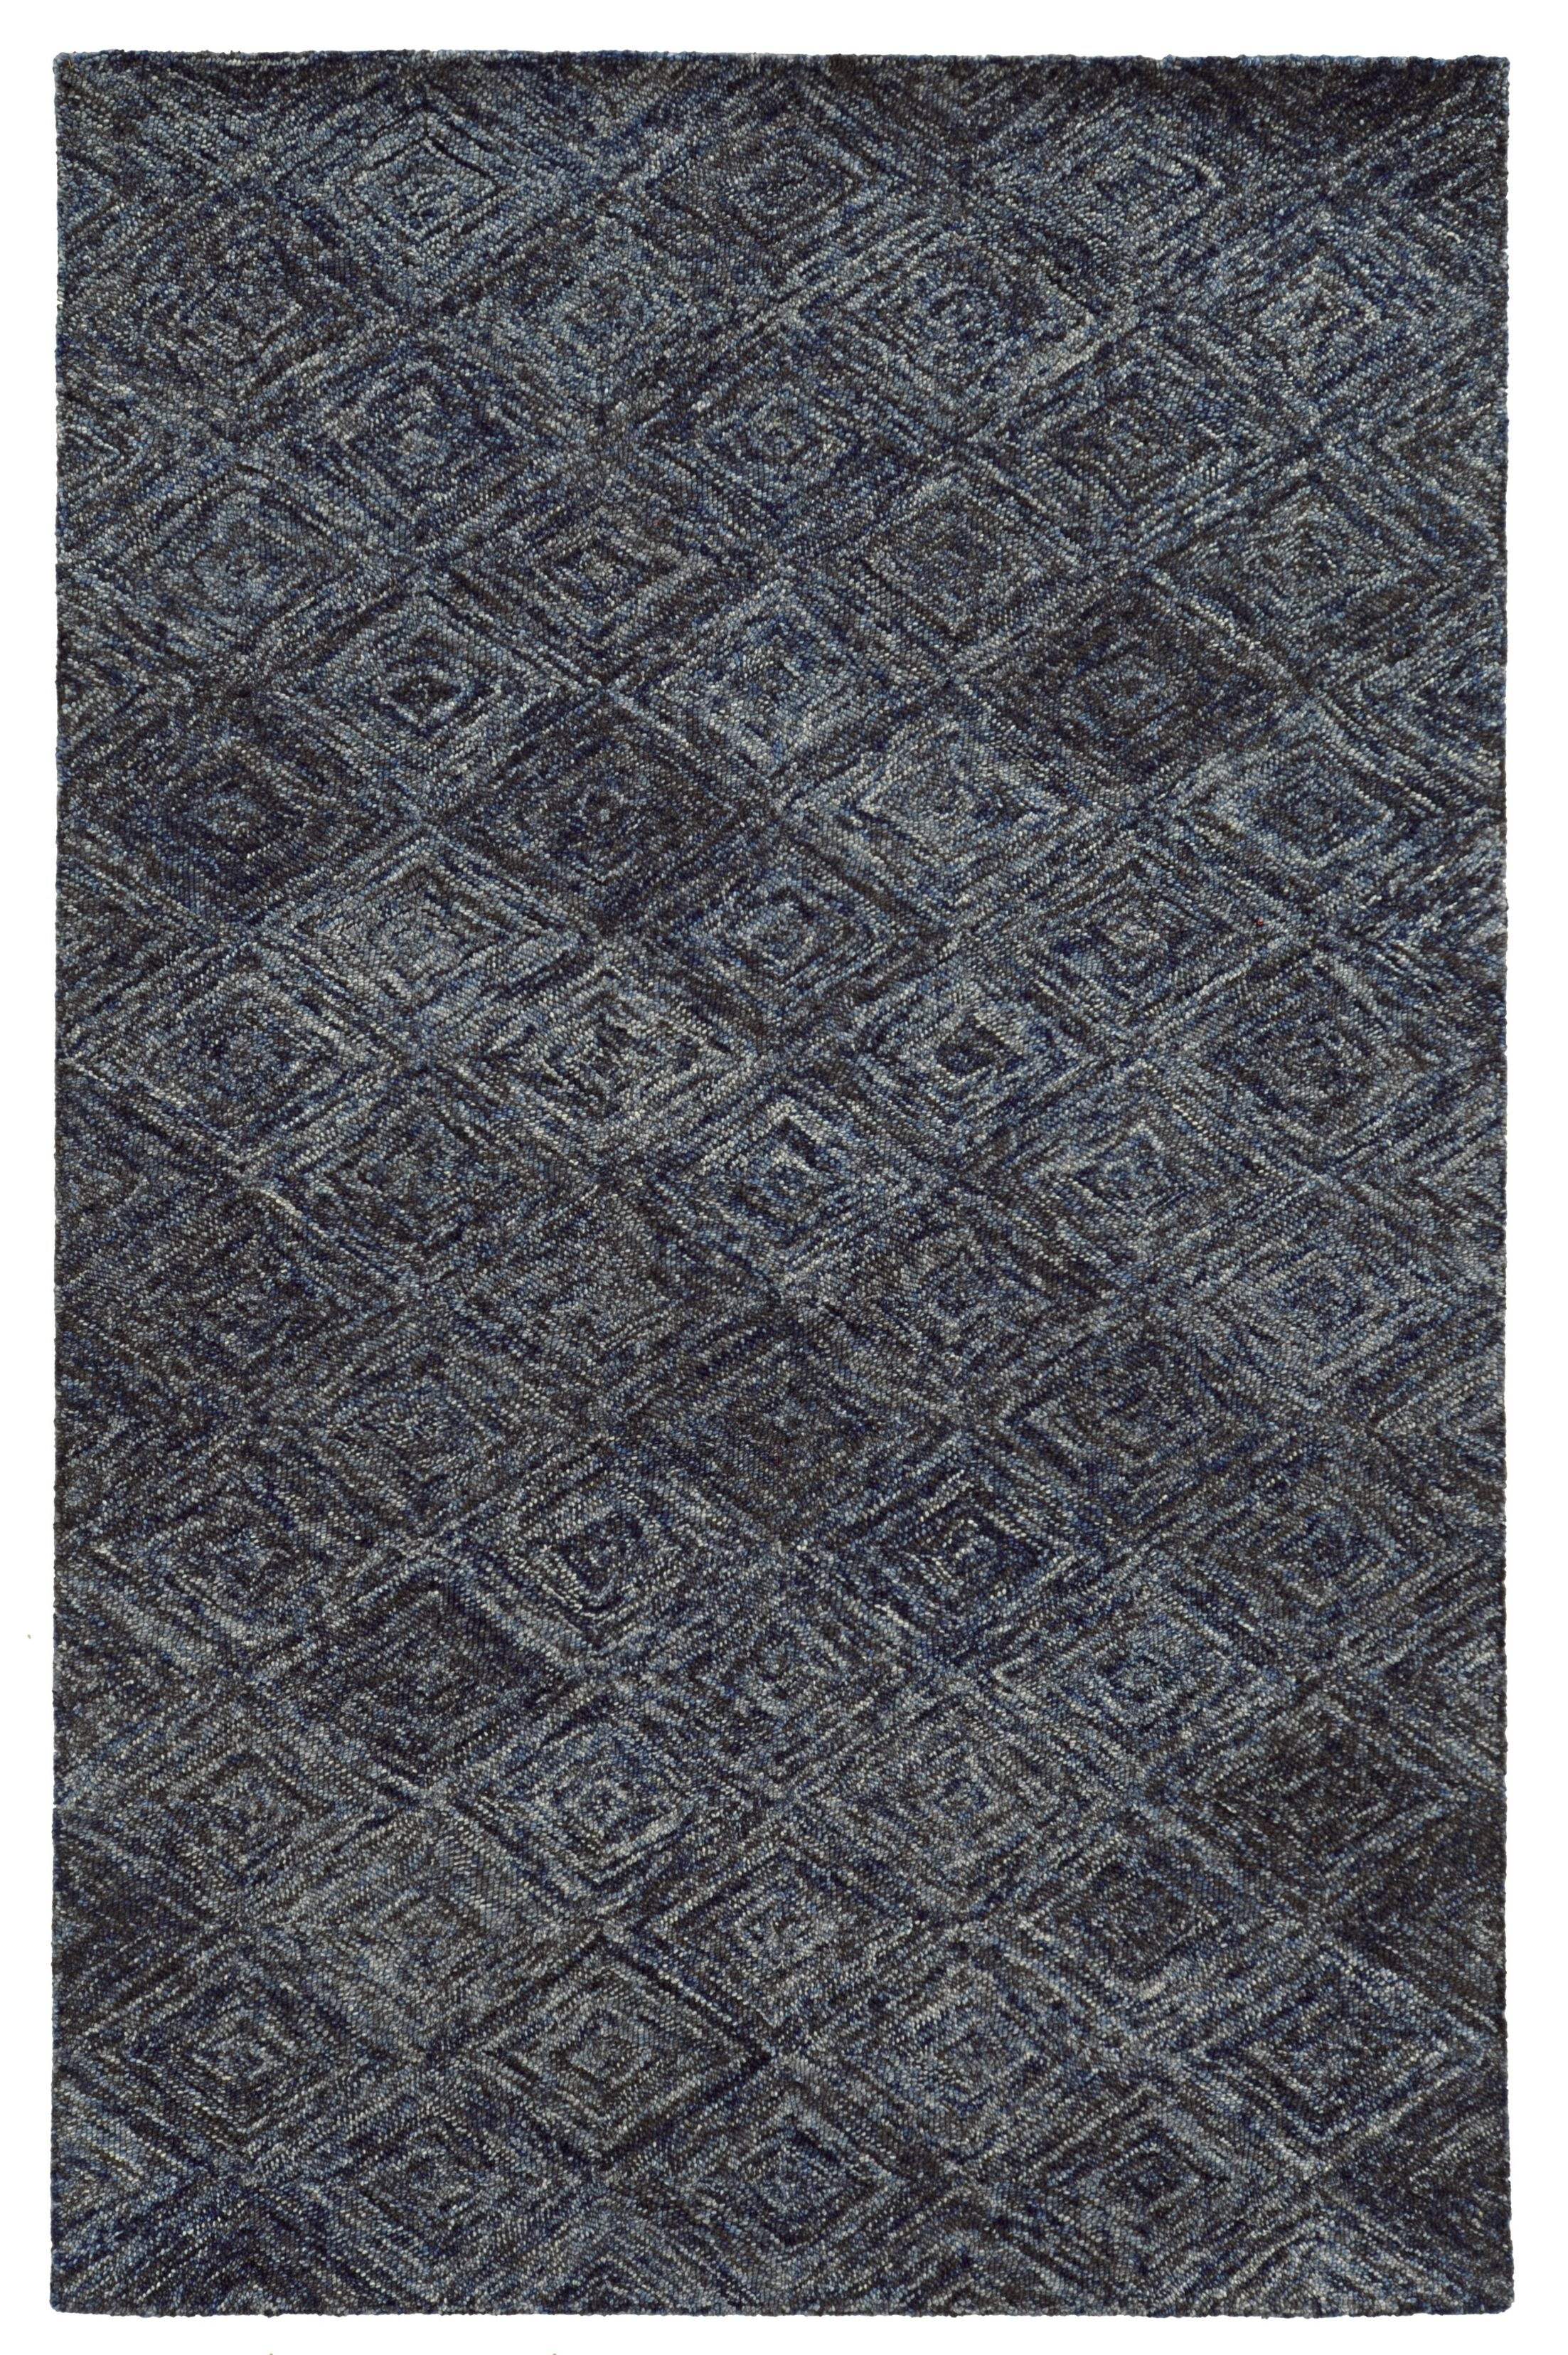 Colorscape Hand-Tufted Geometric Blue/Grey Area Rug Rug Size: Runner 2'6